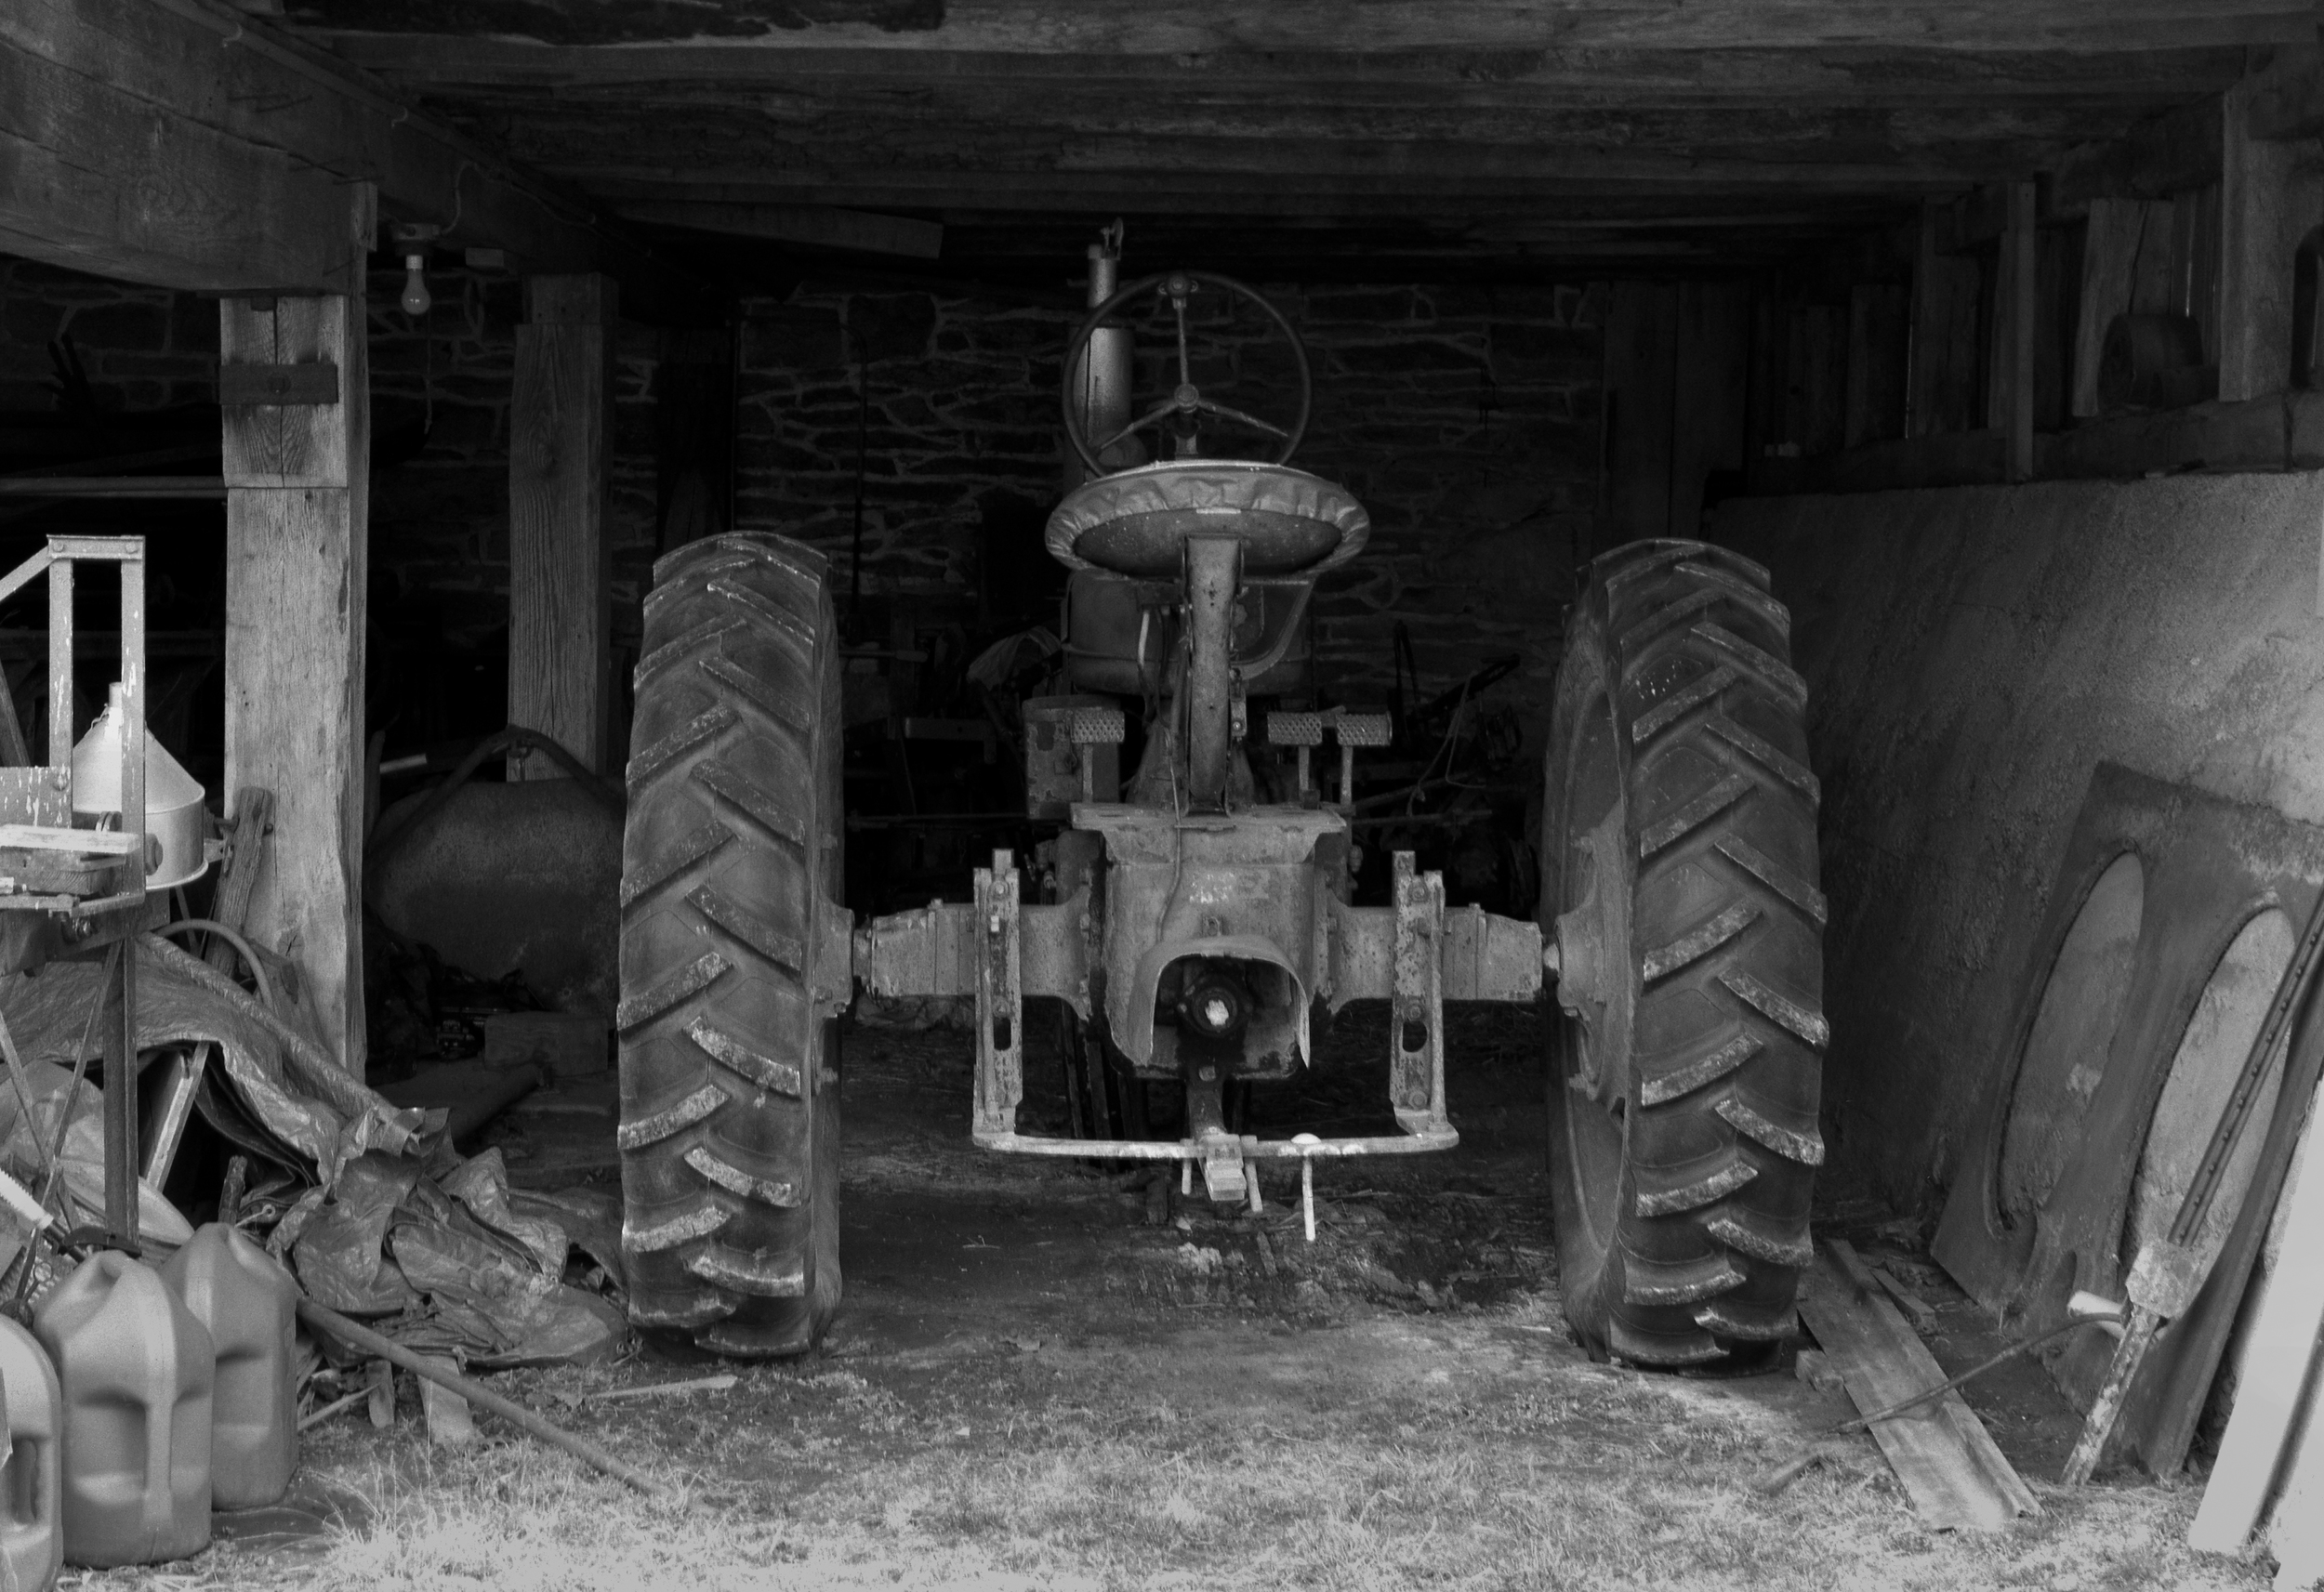 4x5_for_365_project_094_Ktown_PA_German_tractor.jpg